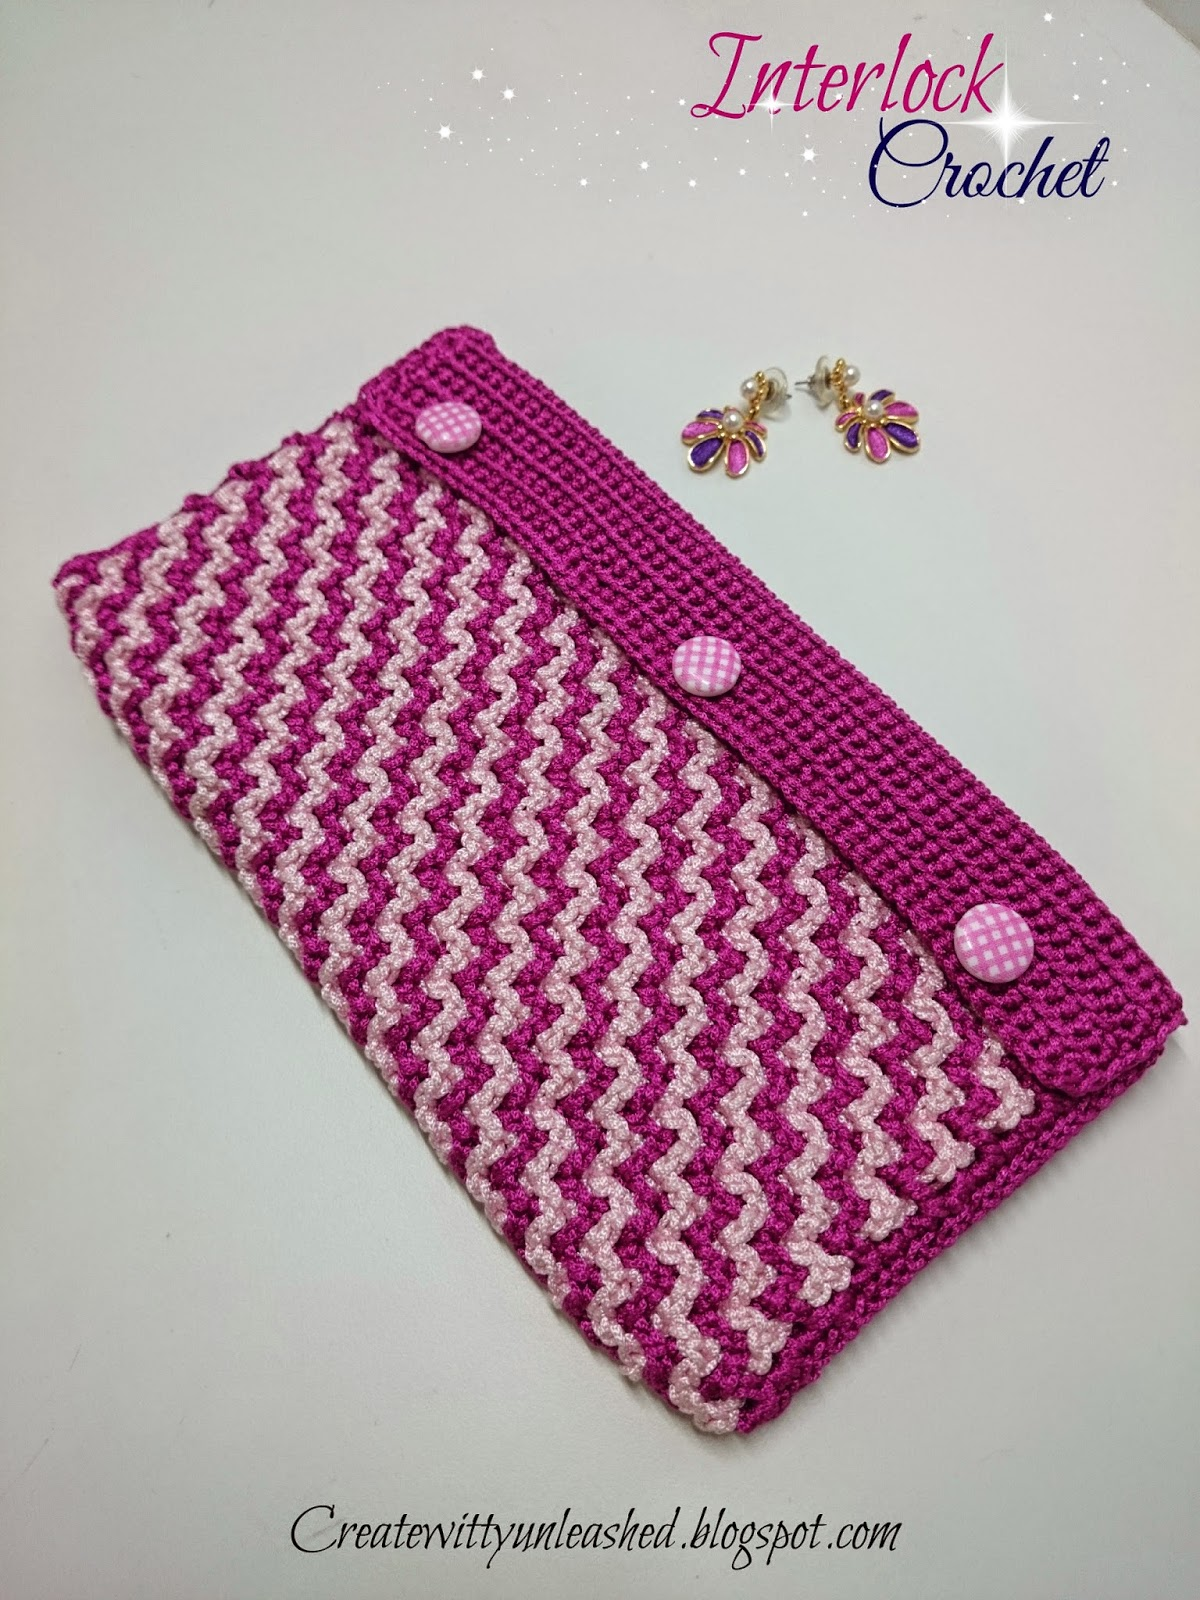 Interlock crochet purse